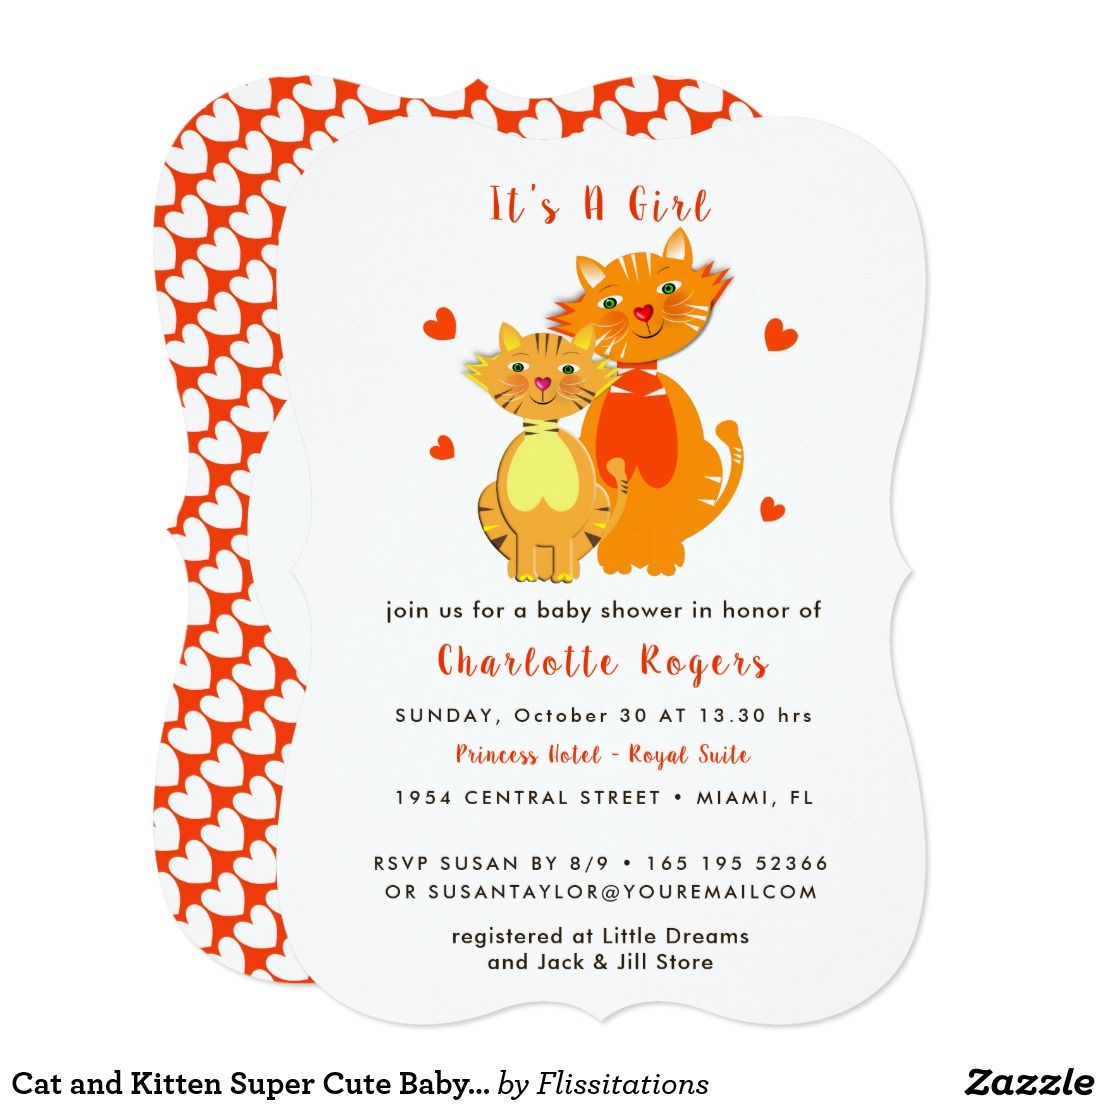 Cat And Kitten Super Cute Baby Shower Invite Sweet Adorable Mother And Baby Cats And Love Hear Baby Shower Invites For Girl Baby Shower Invitations Invitations